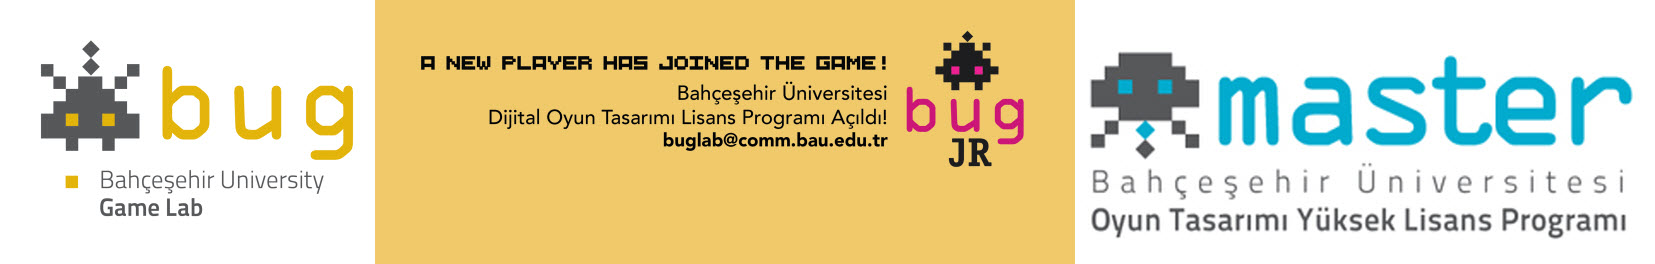 bug-game-lab